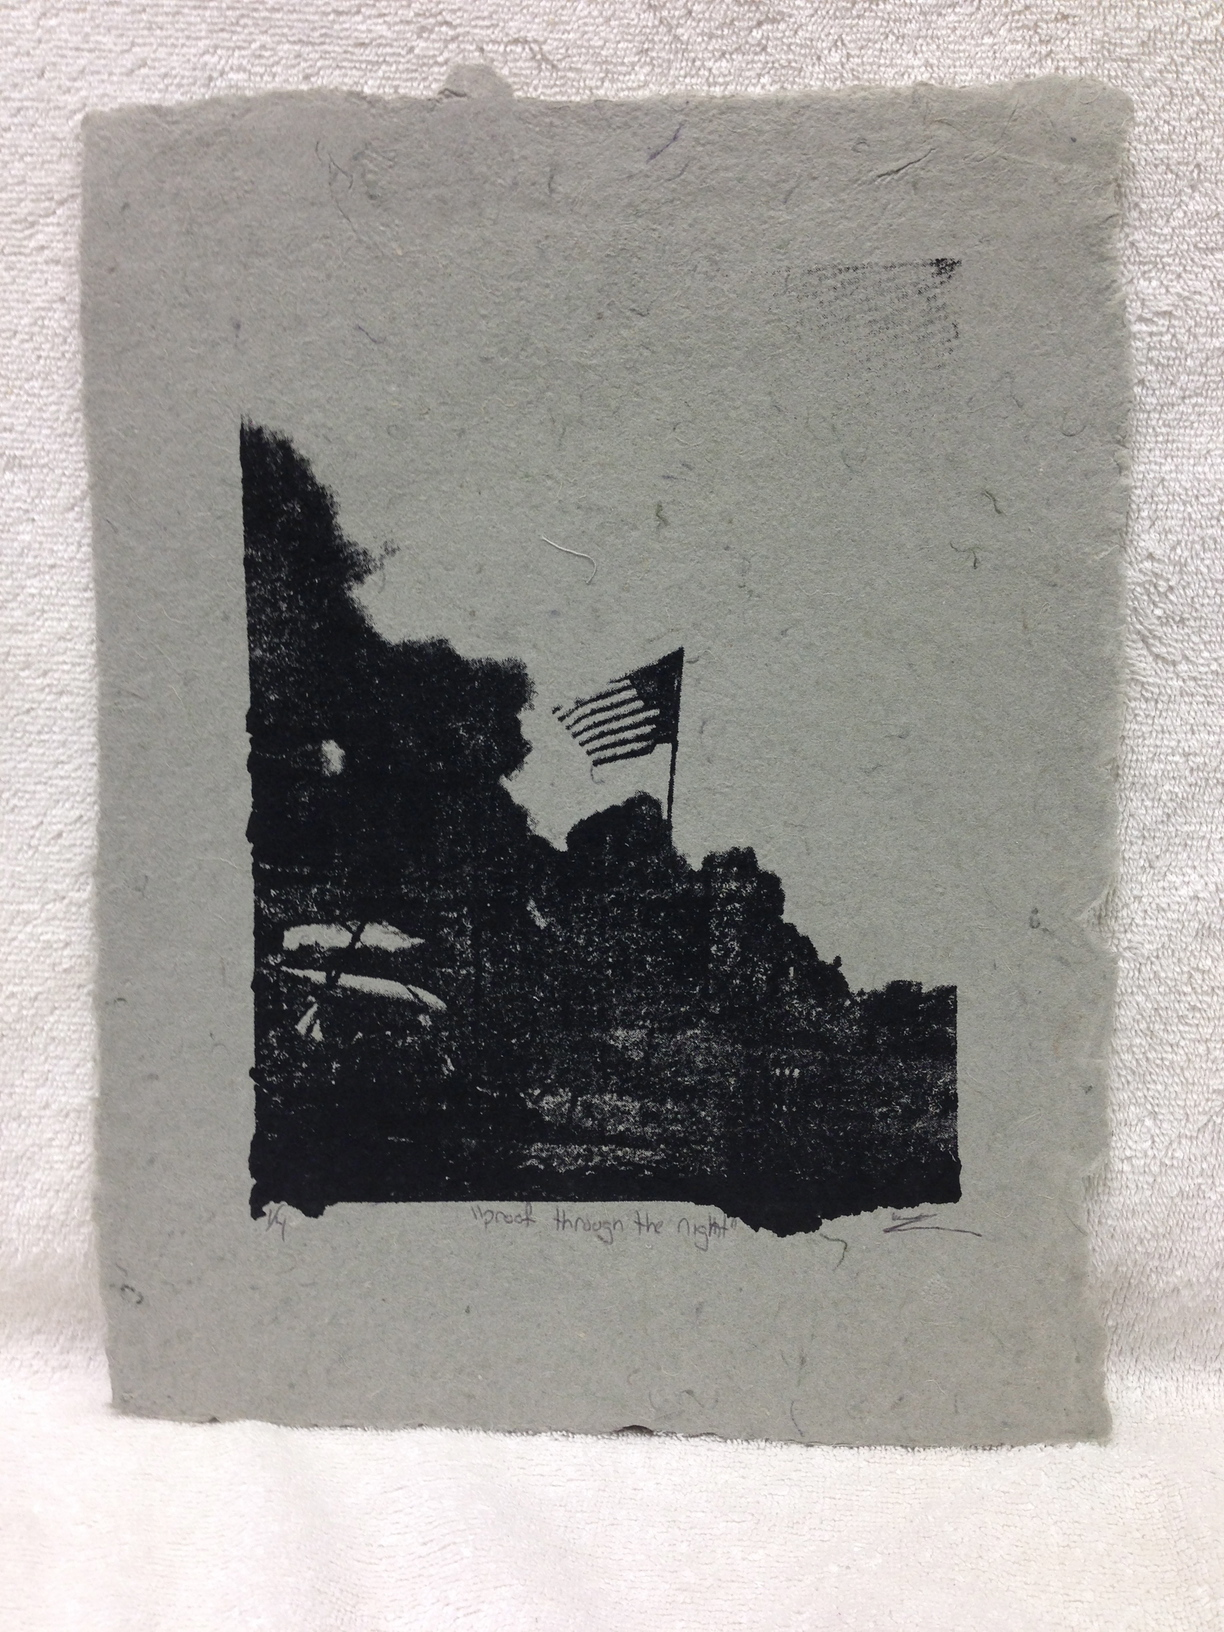 Will Rork Marines - Afghanistan _Through the Night_ 2012 Silkscreen on Handmade Paper from military uniforms 14 x 11 Bergen Community College Workshop IMG_1045.jpg